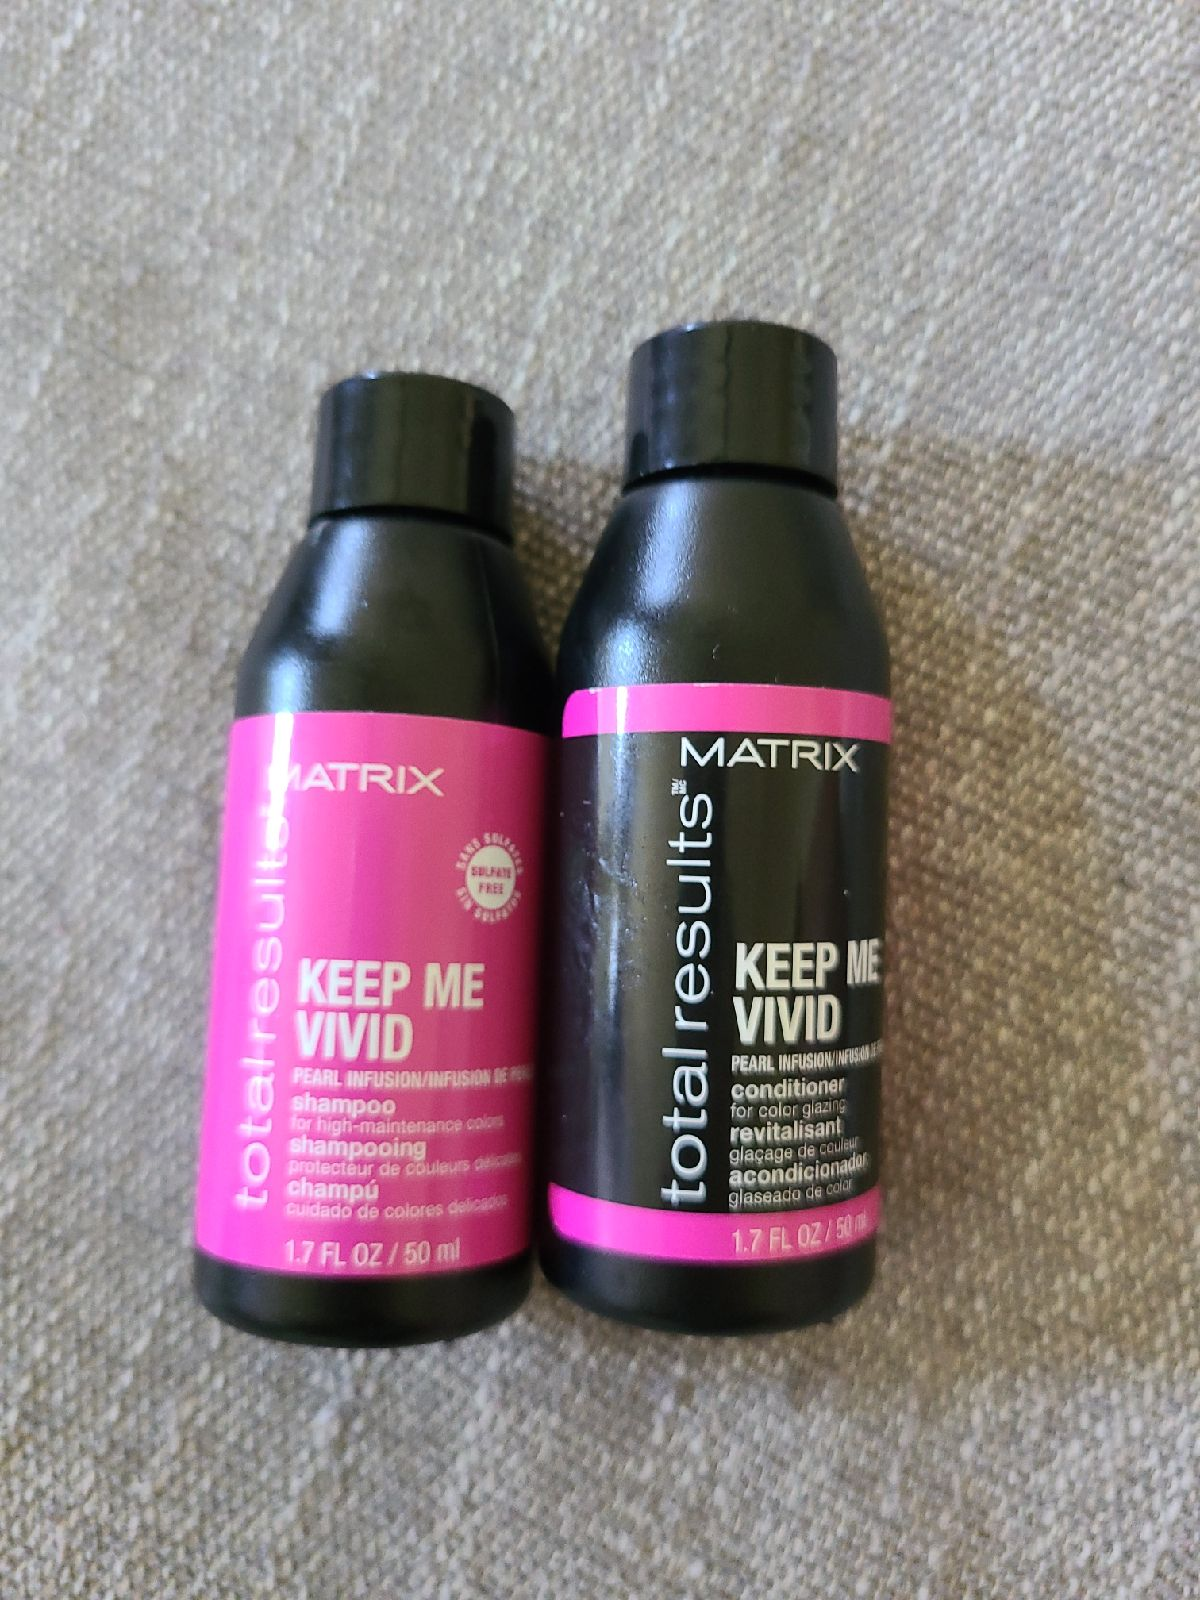 Matrix shampoo and conditioner set